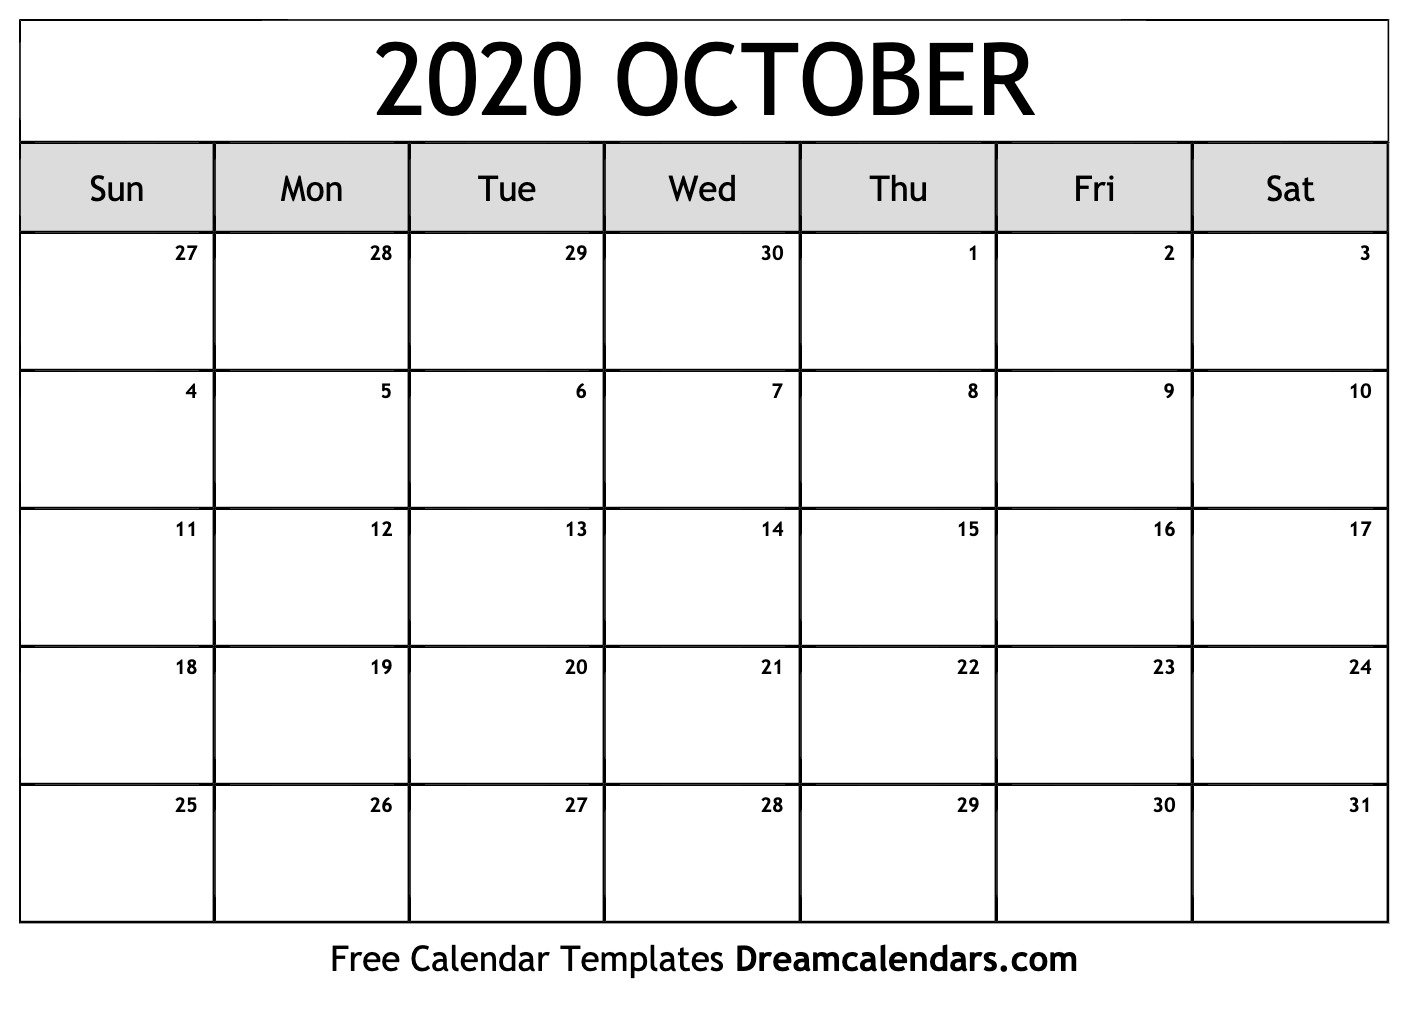 Student Calendar October 2020 Printable Free